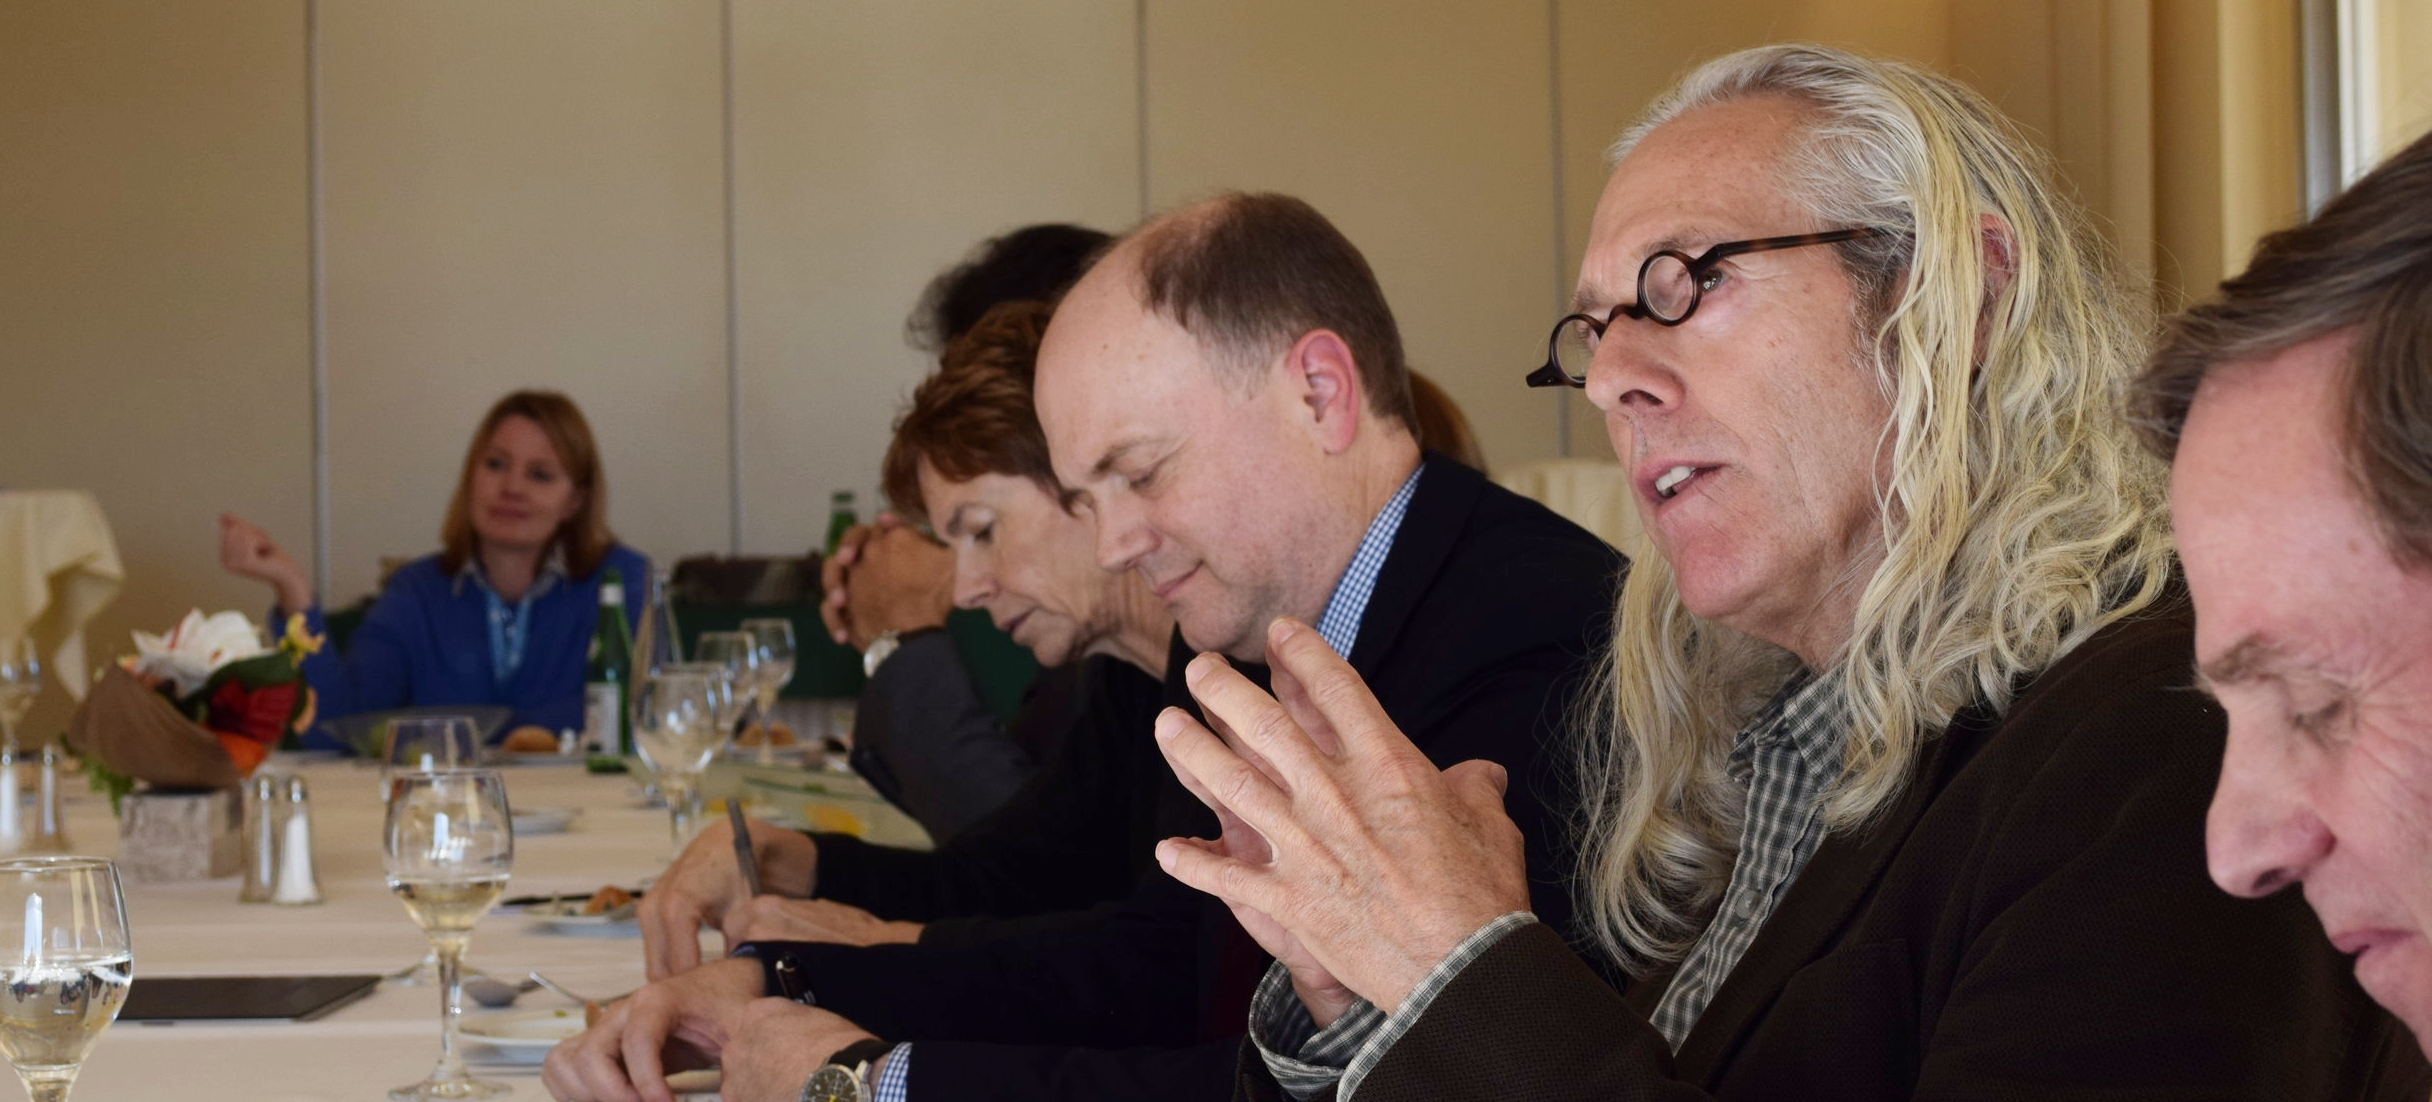 Mike Posner and Auret van Heerden discuss best practices for multistakeholder initiatives (MSI) at a convening for MSIs in Geneva